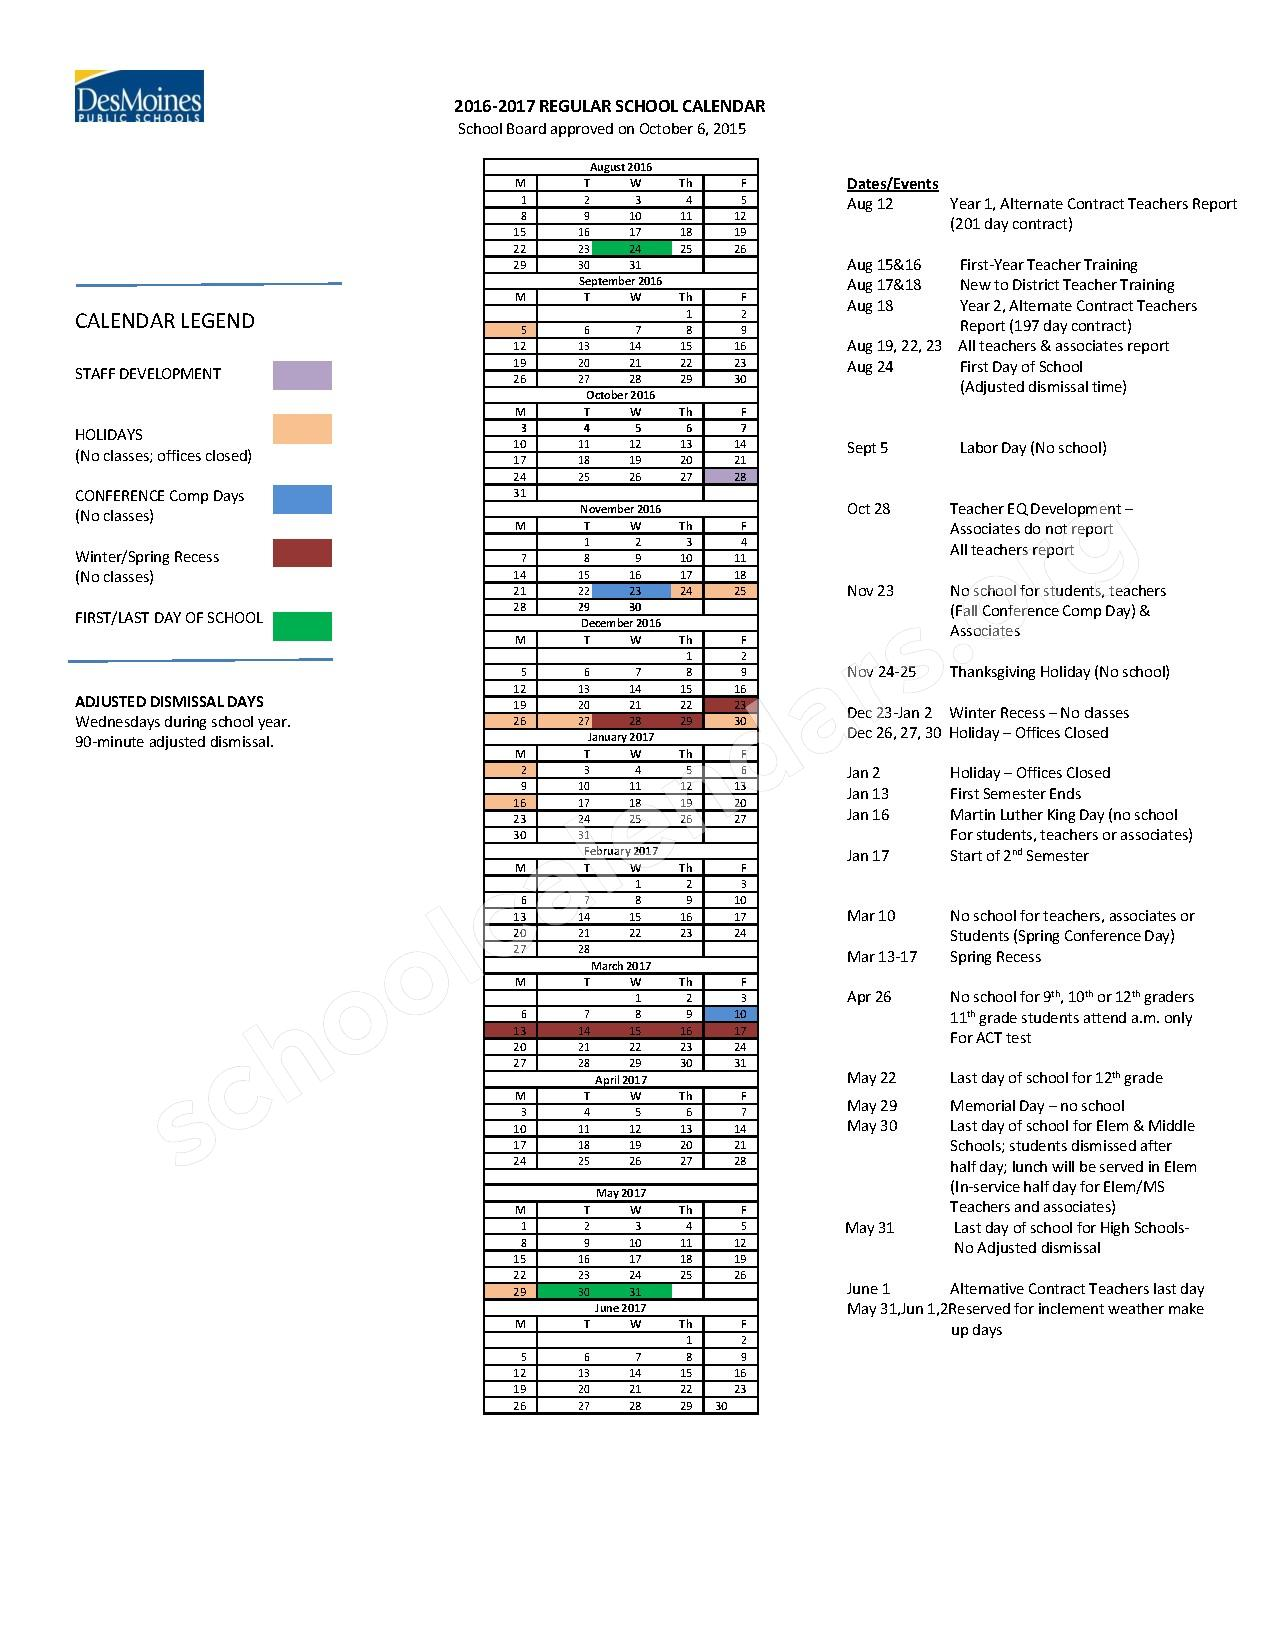 2016 - 2017 Regular School Calendar – Des Moines Independent Community School District – page 1